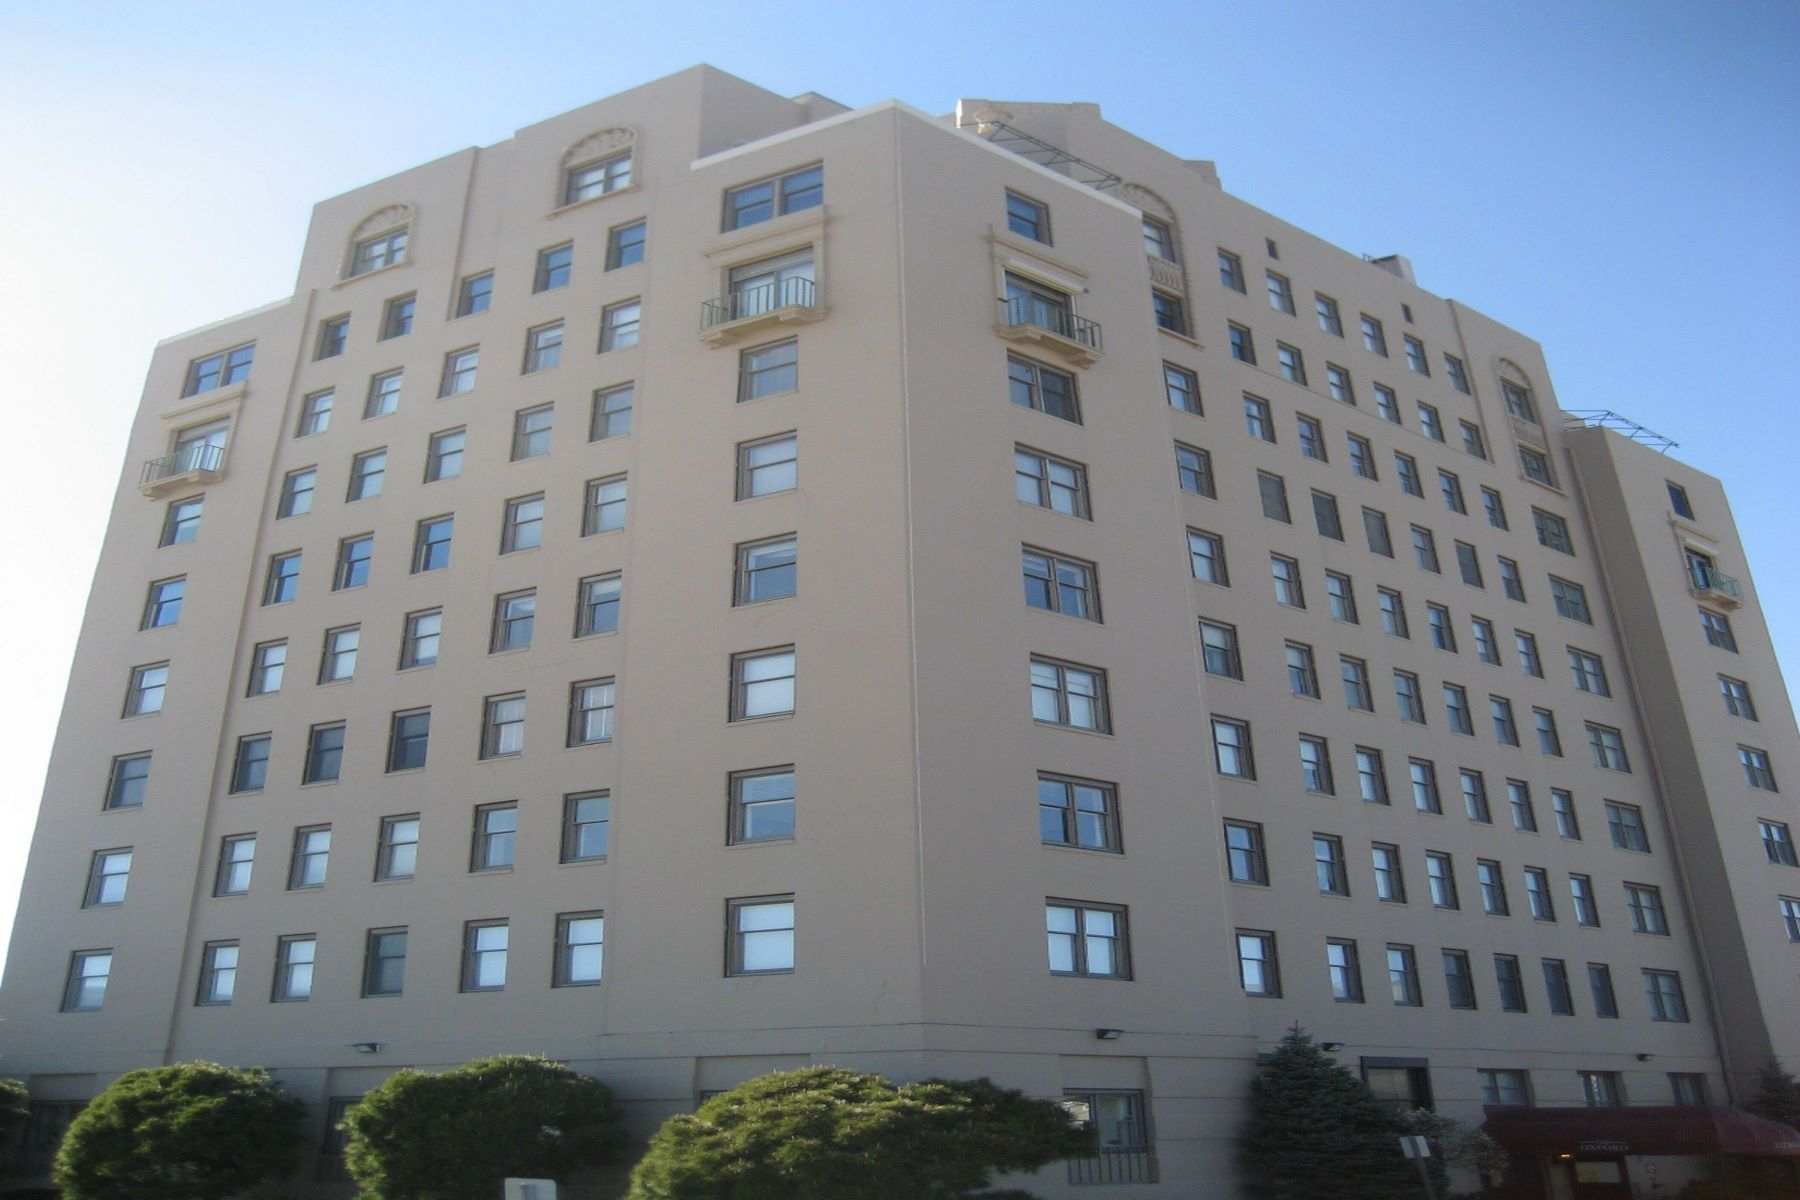 Condominium for Rent at The Oxford 112 S Oxford Unit #1004, FULL SUMMER Ventnor, New Jersey 08406 United States